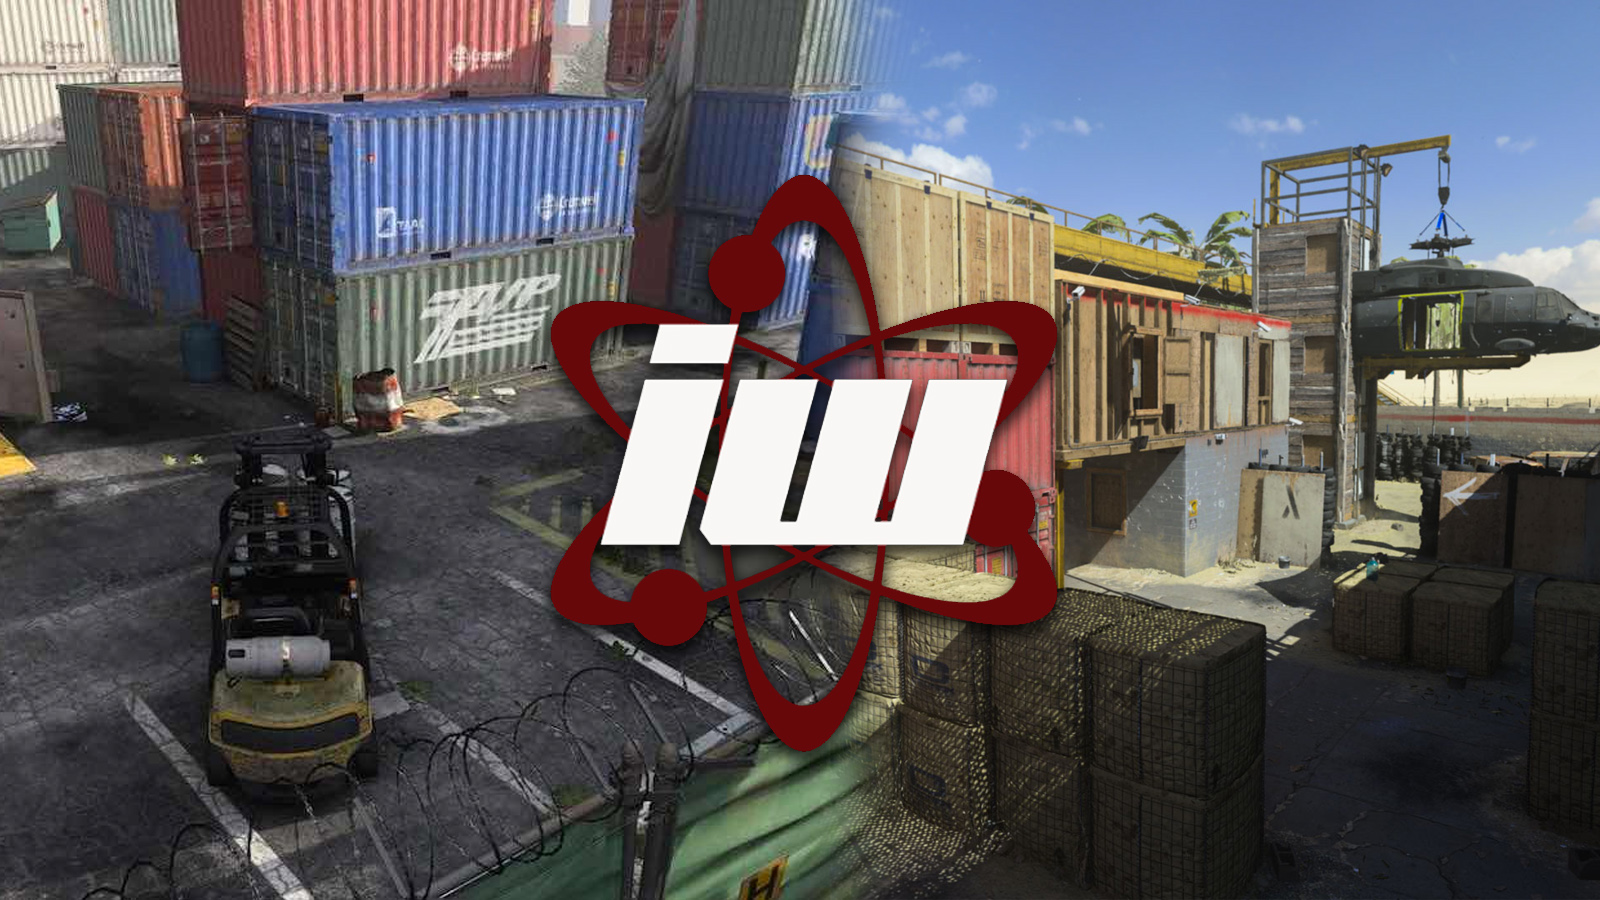 Shipment and Shoot House 24/7 are coming to Modern Warfare.